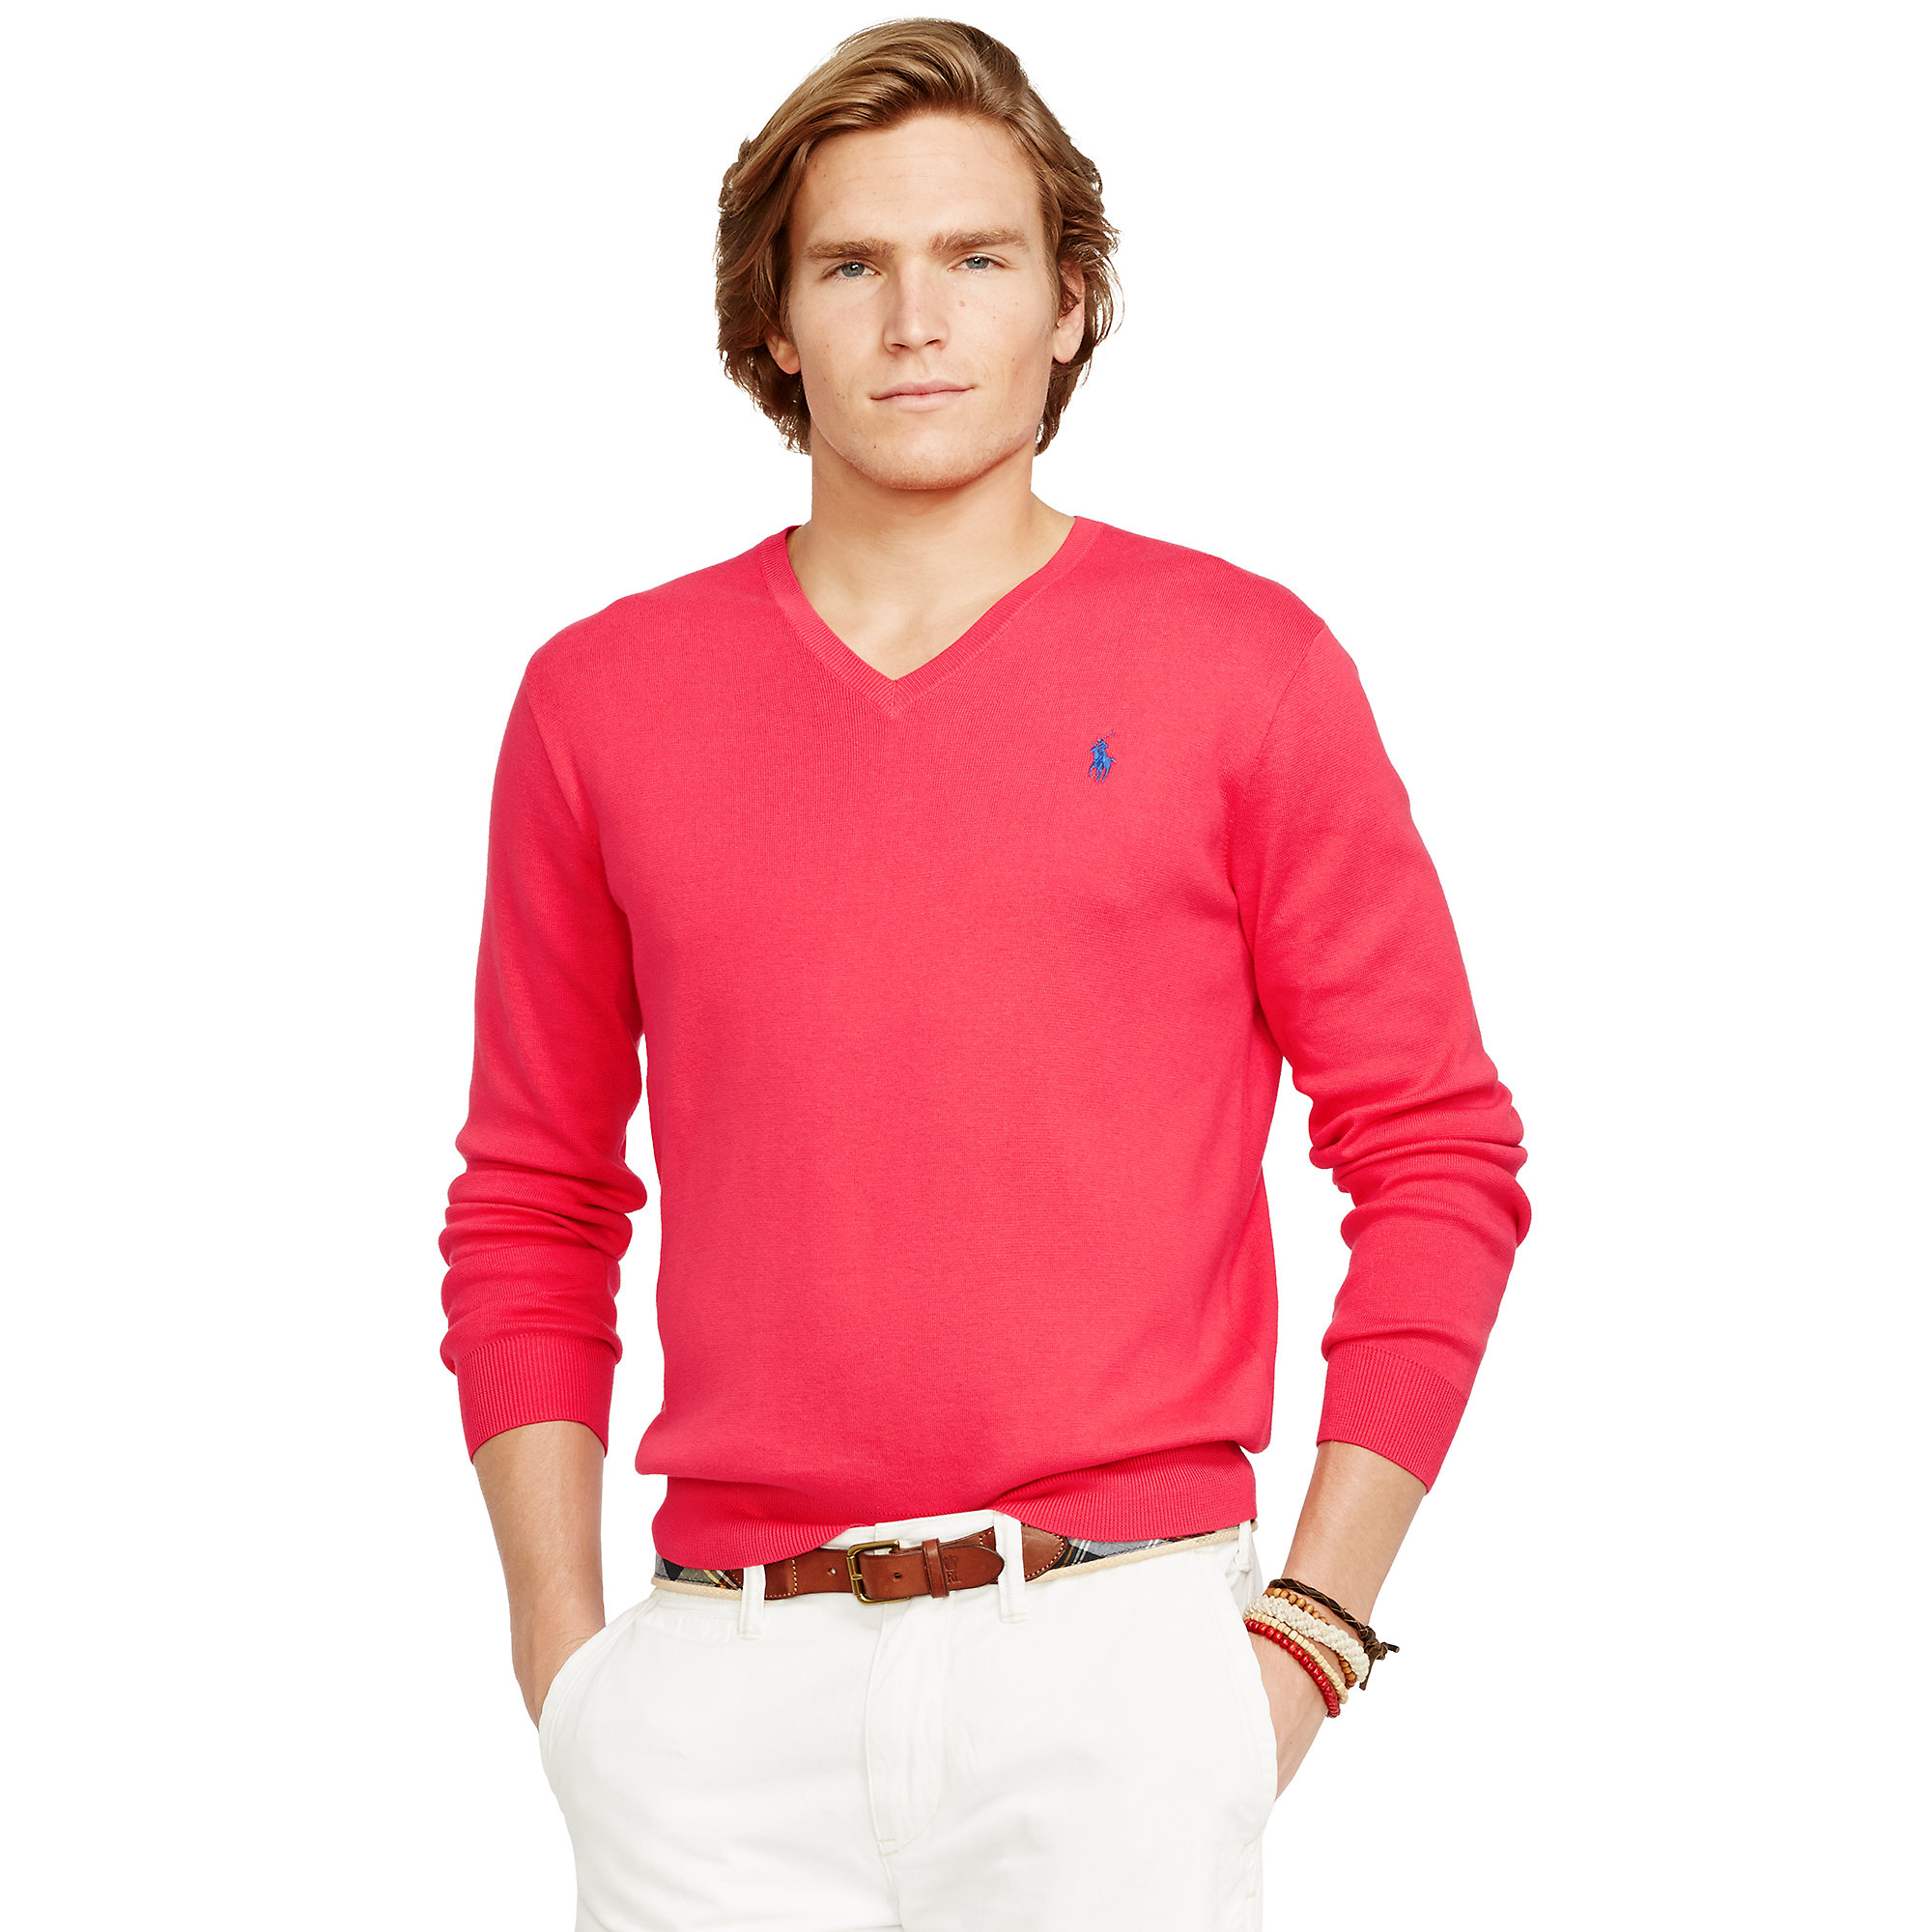 ae2aac307bf7 Polo Ralph Lauren Pima Cotton V-Neck Sweater in Purple - Lyst